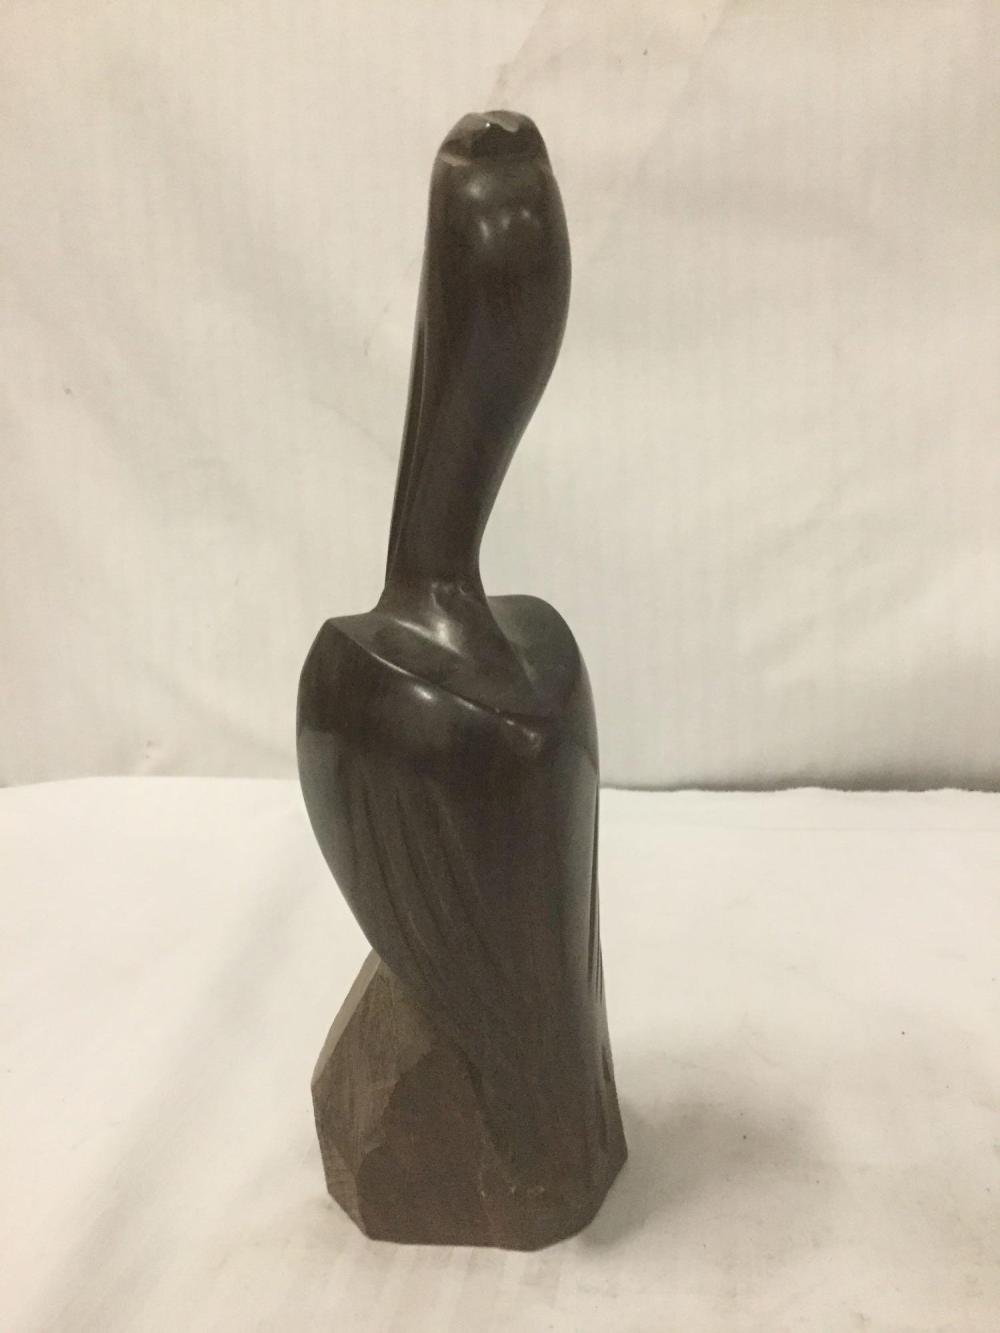 Lot 248: 2 hand carved wooden bird statues - heron and flying bird